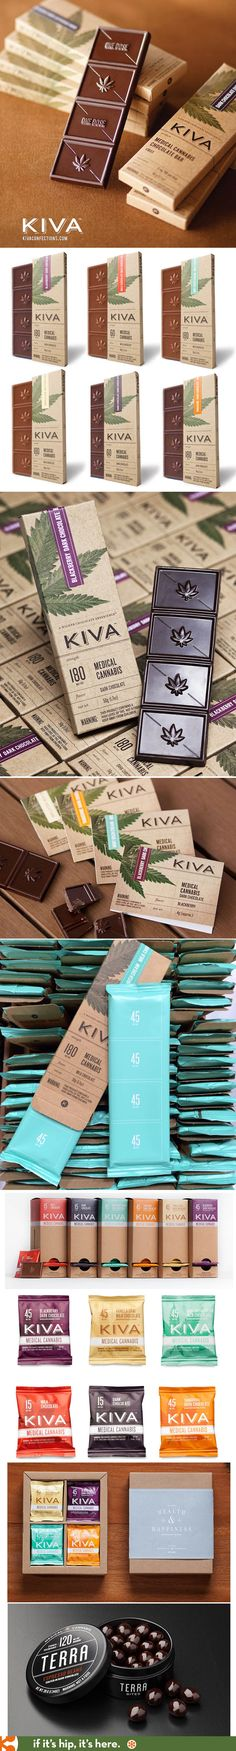 Kiva Confections, medical cannabis edibles, have beautiful packaging, displays and product design. PD